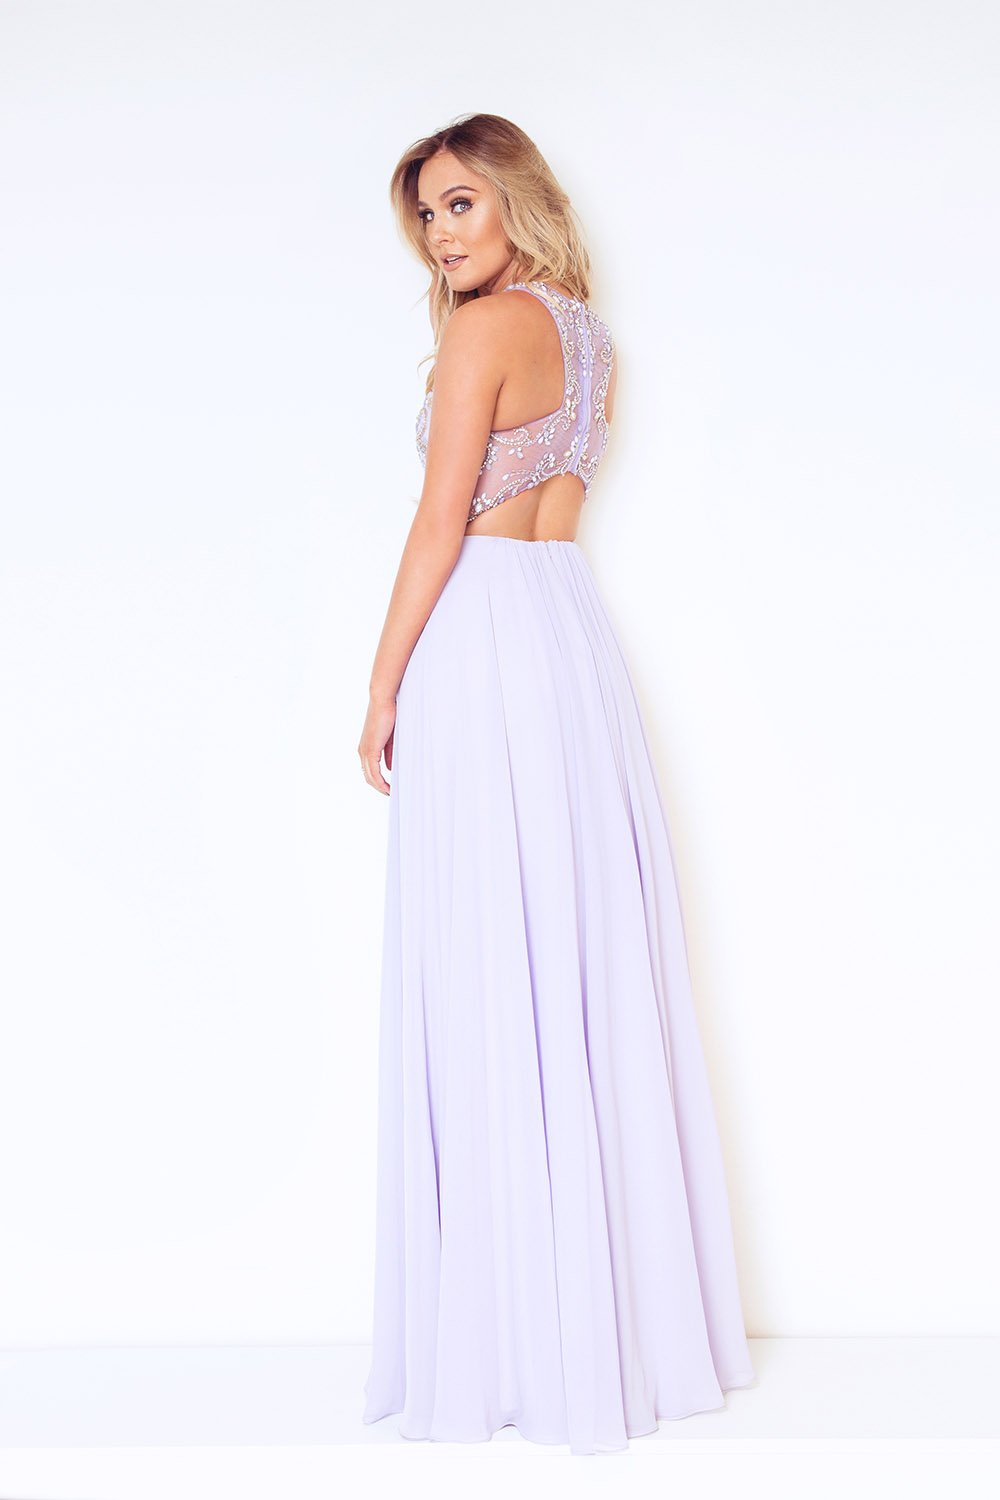 Sestos Lavender Long Gown